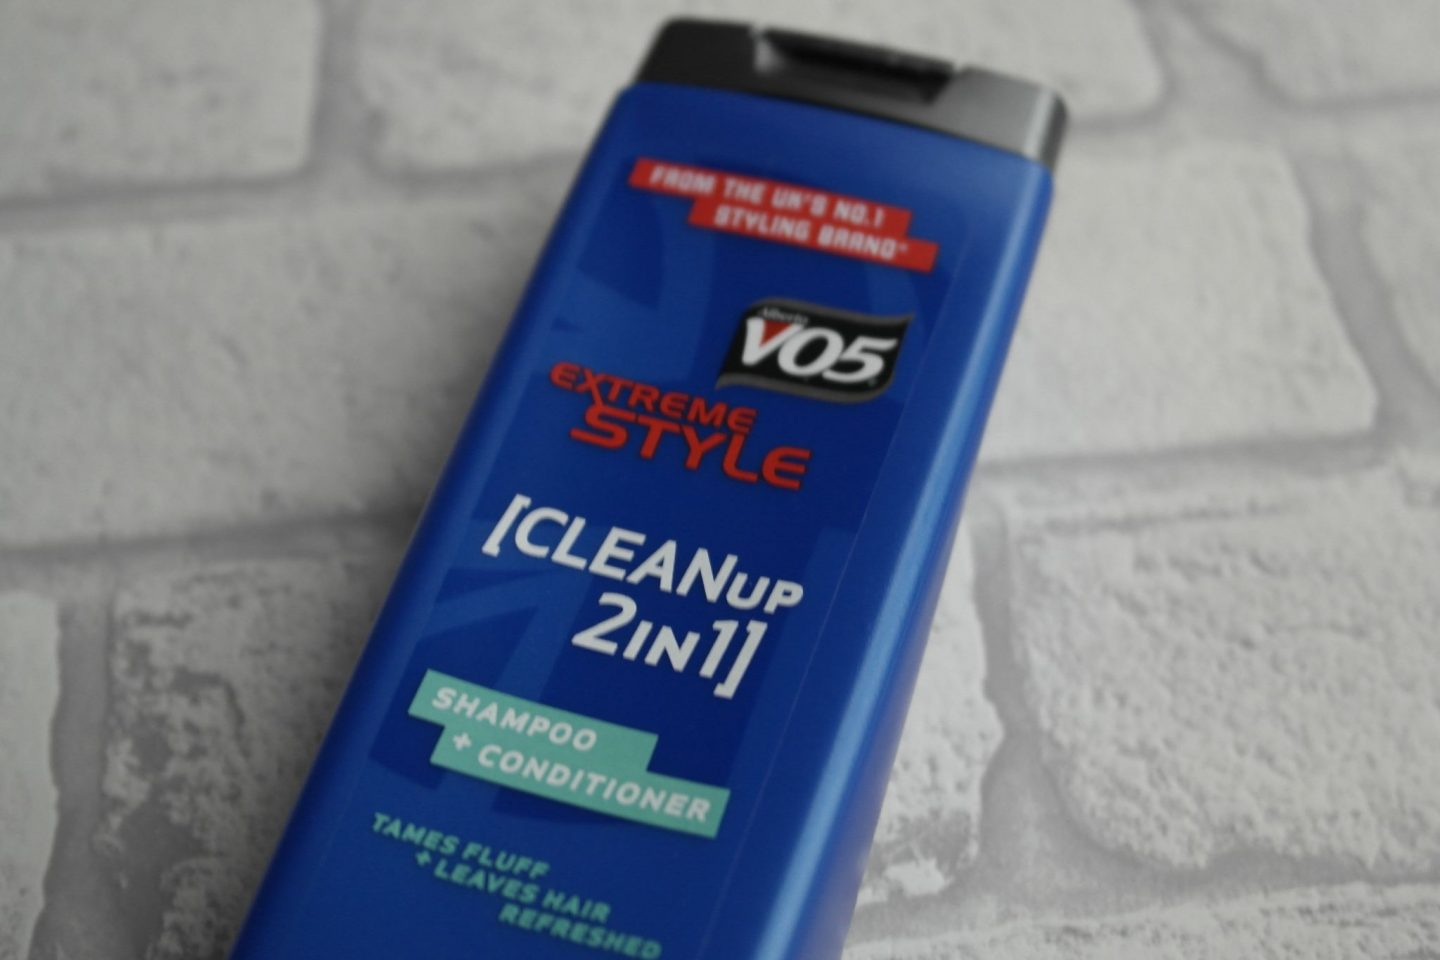 V05 Extreme Style Clean Up 2-in-1 Shampoo & Conditioner